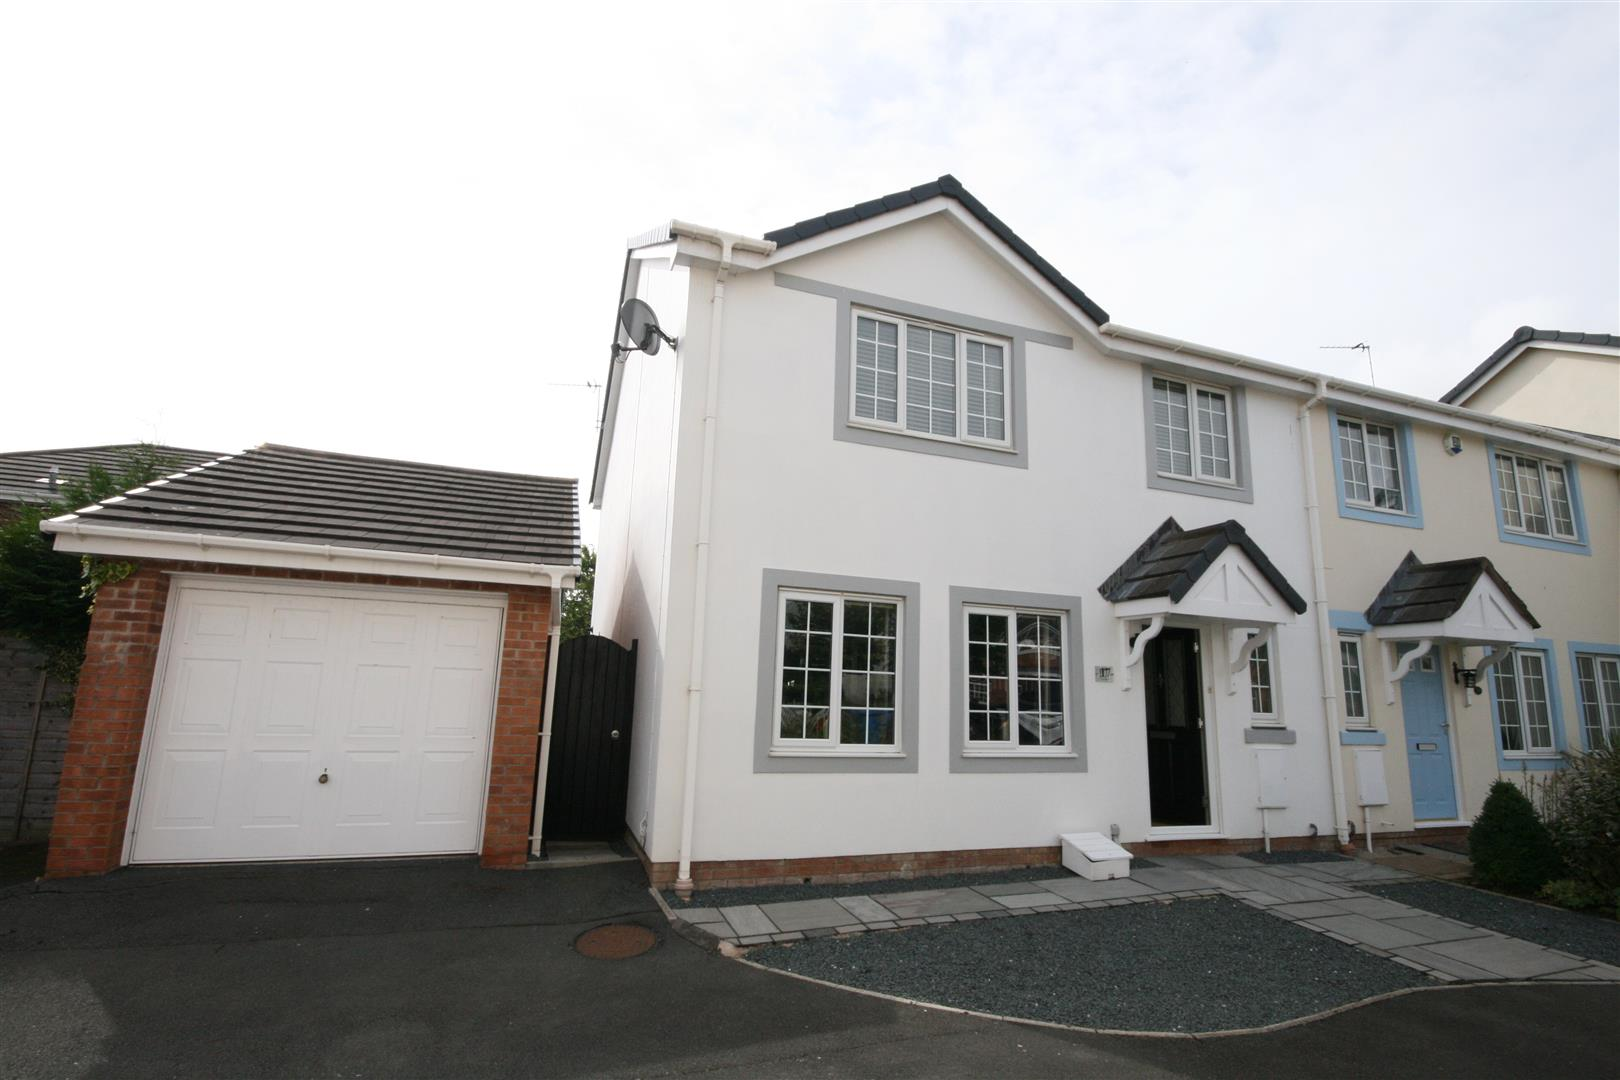 3 Bedrooms Mews House for sale in Hermitage Way, Lytham St. Annes